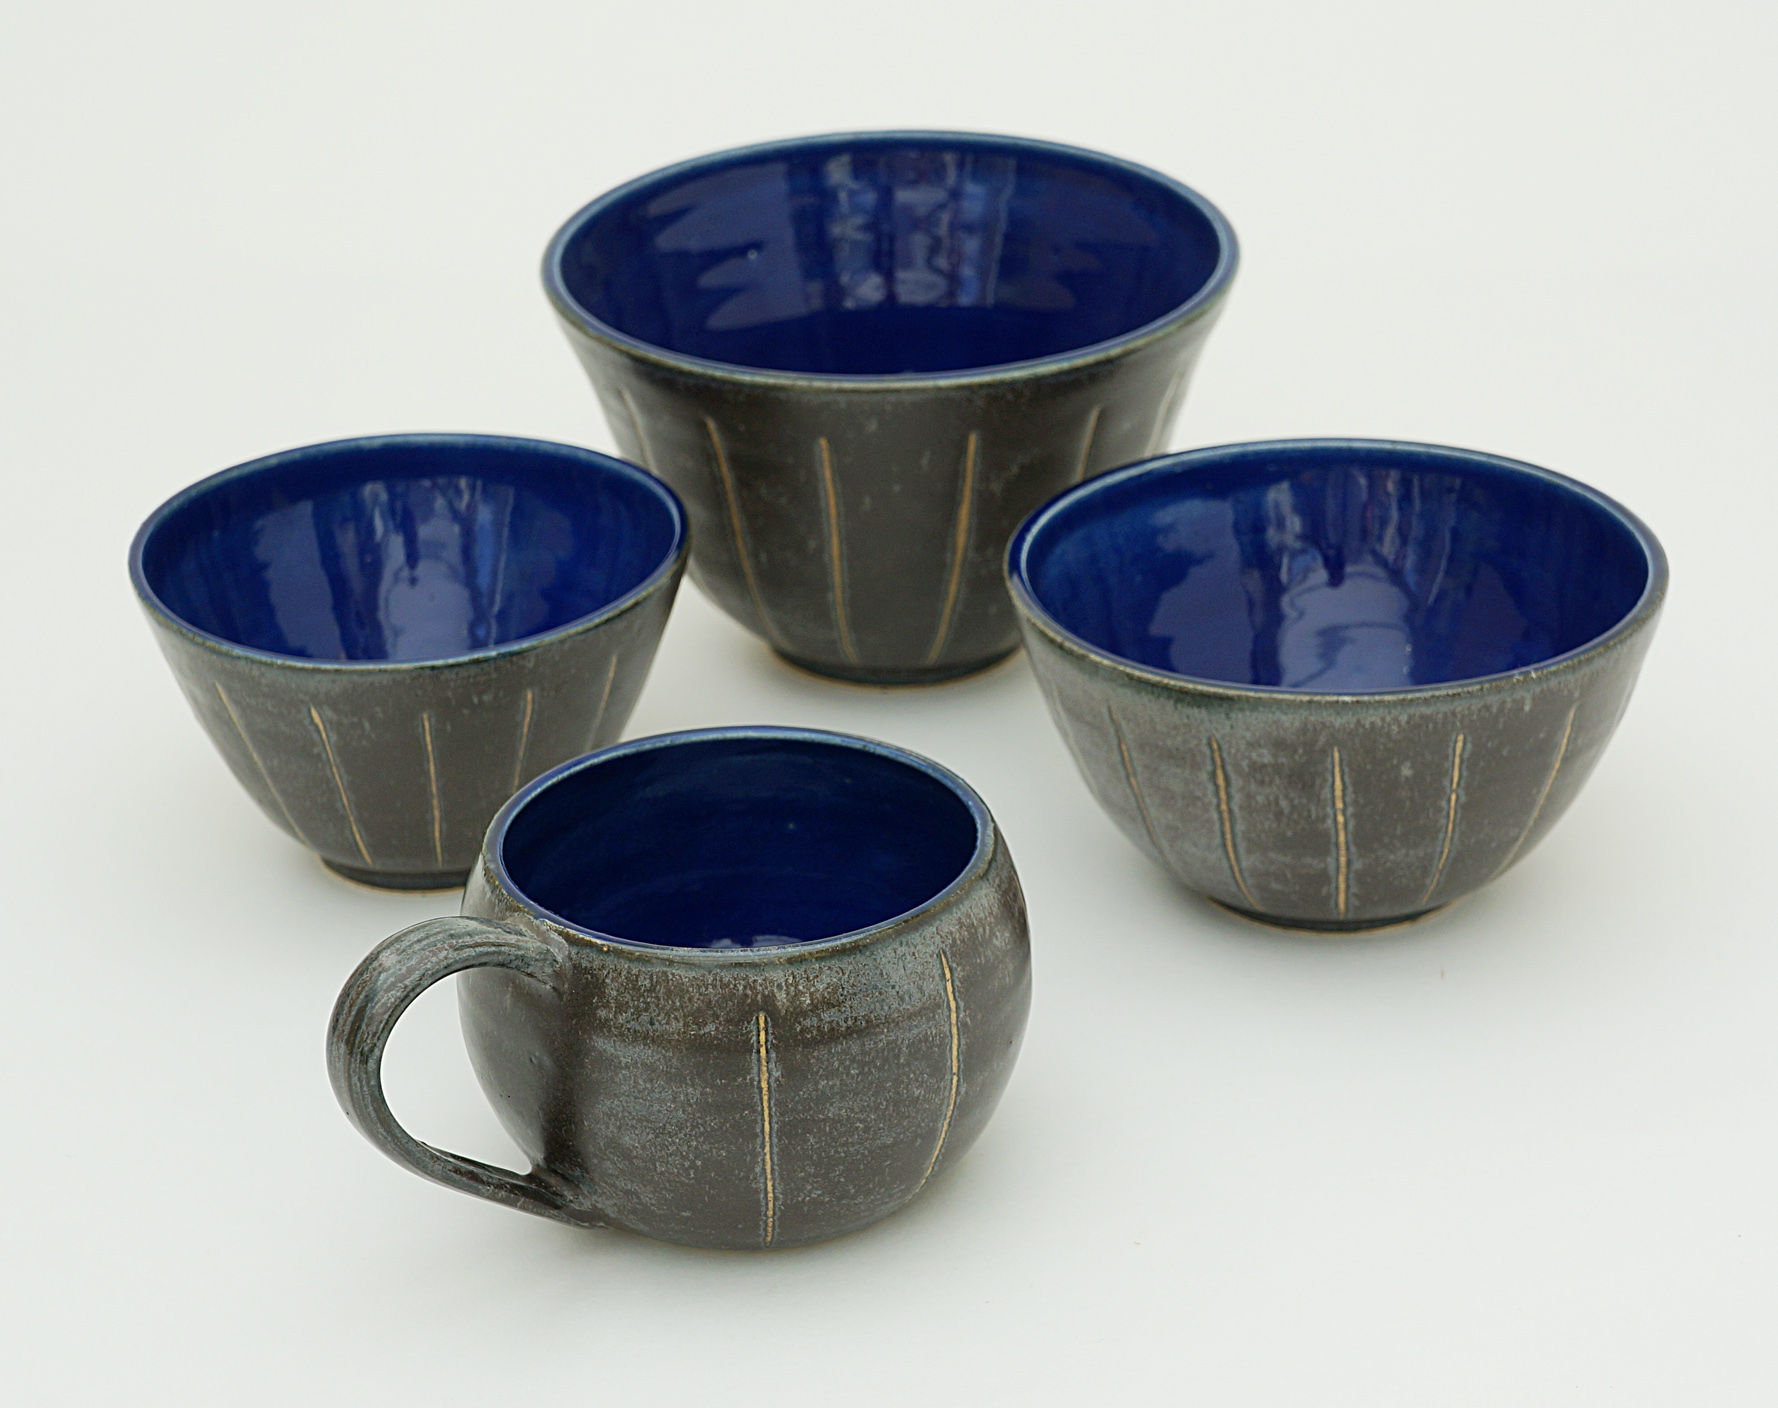 Black and blue bowls and cup